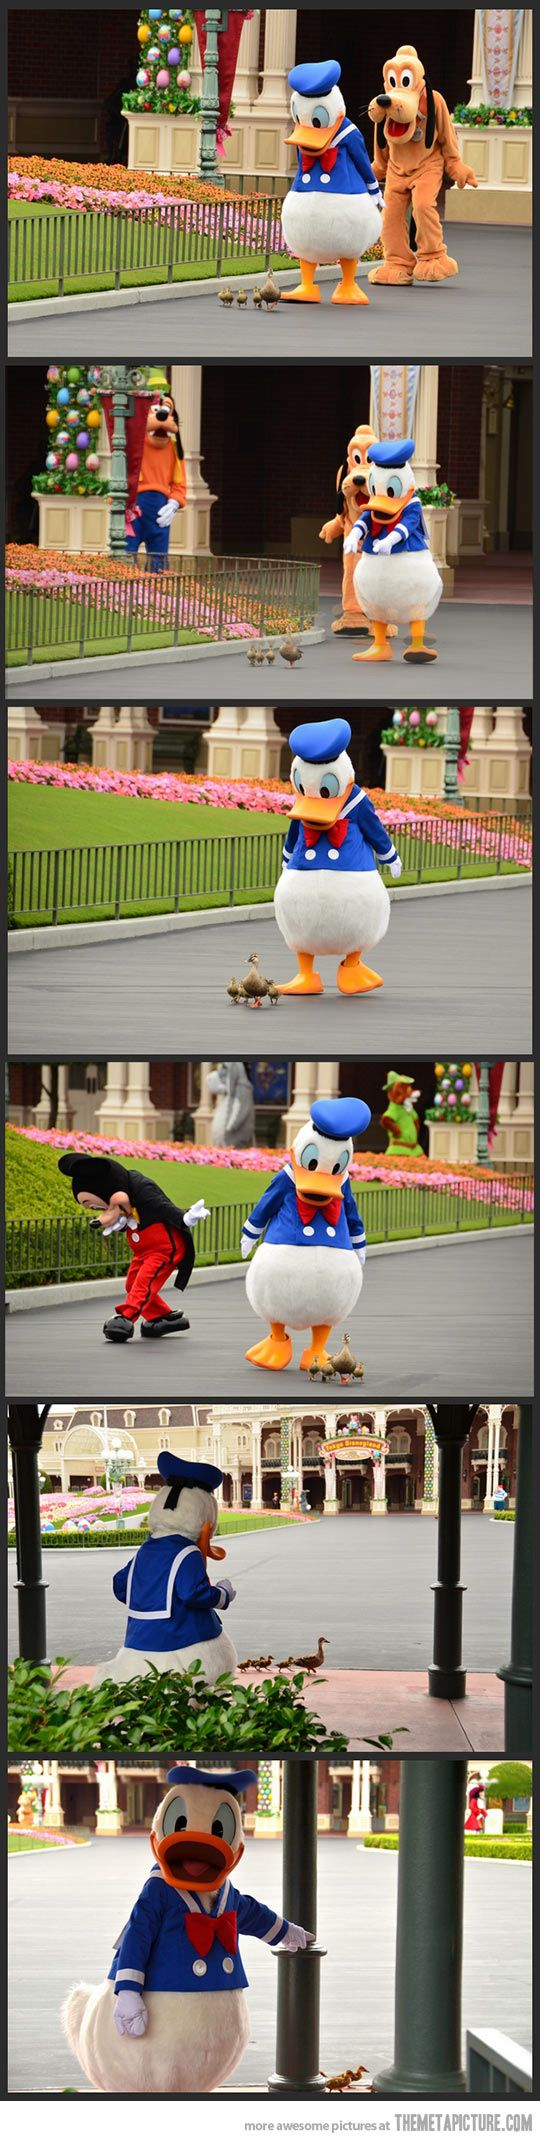 THIS IS TOO CUTE! i'm bringing ducks to disneyland: Picture, Disney Magic, Donald O'Connor, Donald Duck, So Happy, Ducks, Things Disney